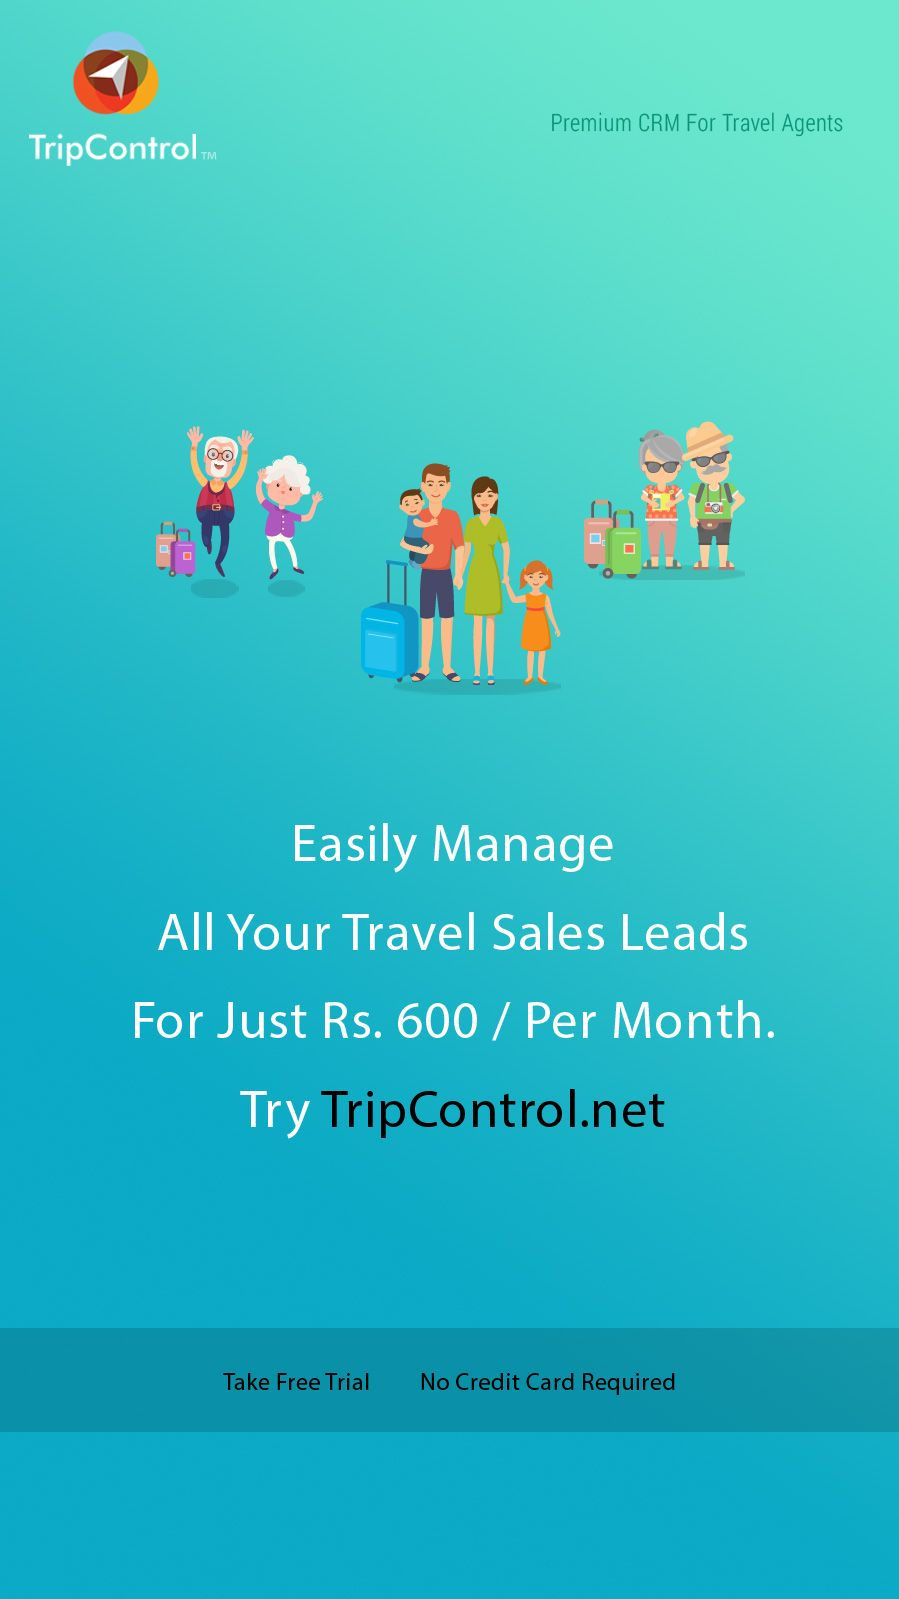 Easily manage your travel sales leads for just Rs 600/- per